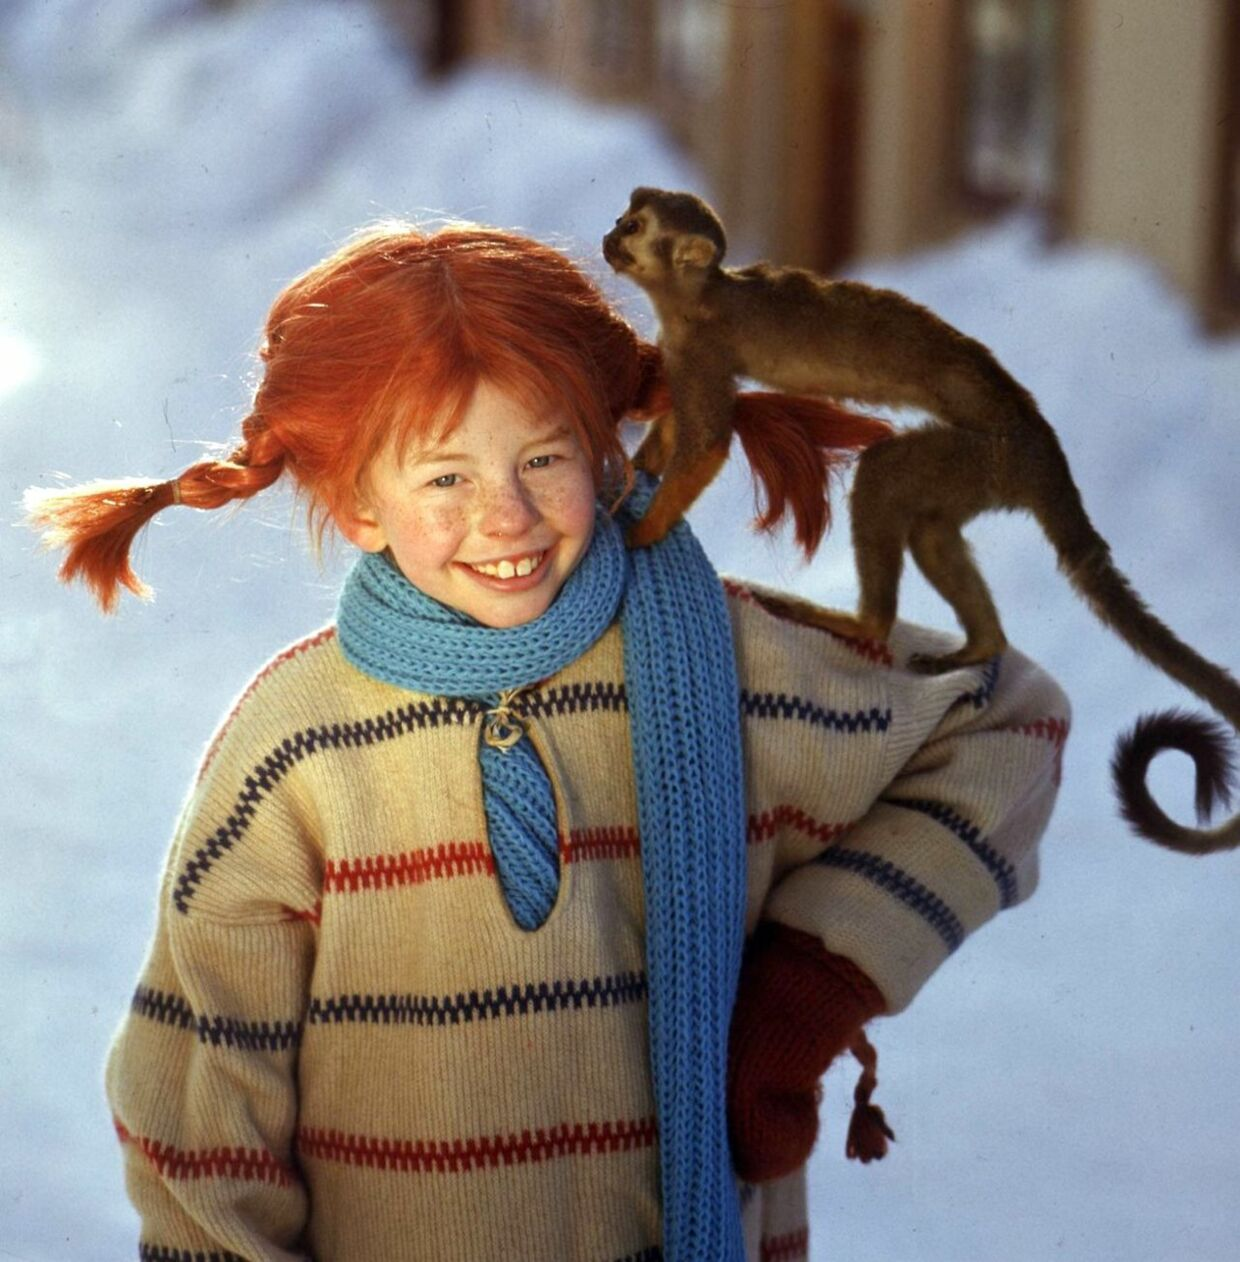 "STO03- 20020128-STOCKHOLM, SWEDEN: (FILES) File picture from February 1968 file photo of Inger Nilsson dressed as Pippi Longstocking, with her monkey ""Mr Nilsson"" on her shoulder. Swedish author Astrid Lindgren has died, 94 years old, Swedish news agency TT reported Monday. Lindgren wrote children books about Pippi Longstocking, Karlsson on the roof and other popular figures. EPA PHOTOS PRESSENS BILD/JAN DELDEN/TEN -SWEDEN OUT-"